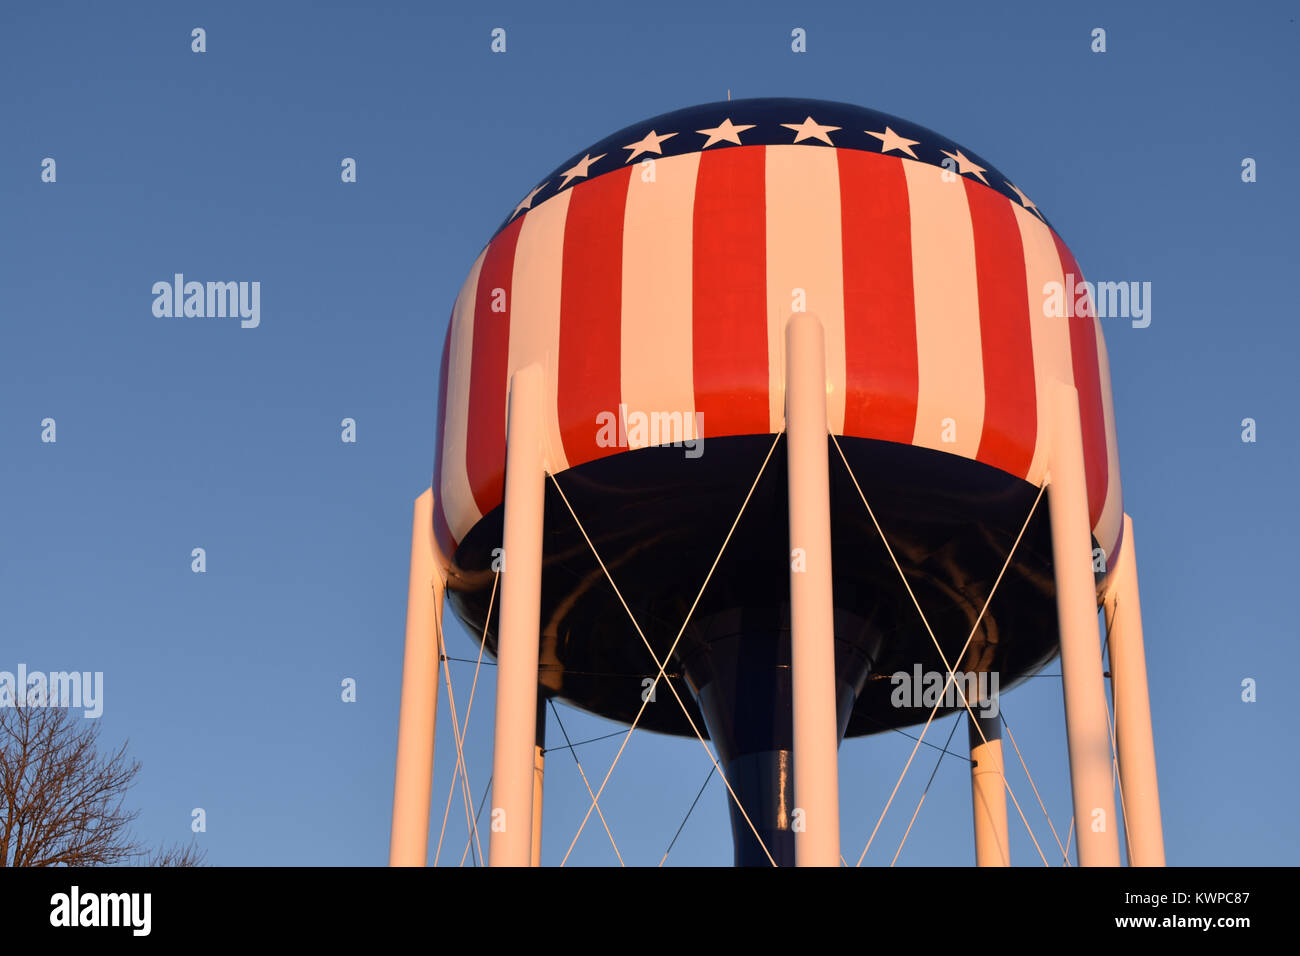 Red, white, and blue water tower in Bowling Green, Kentucky - Stock Image